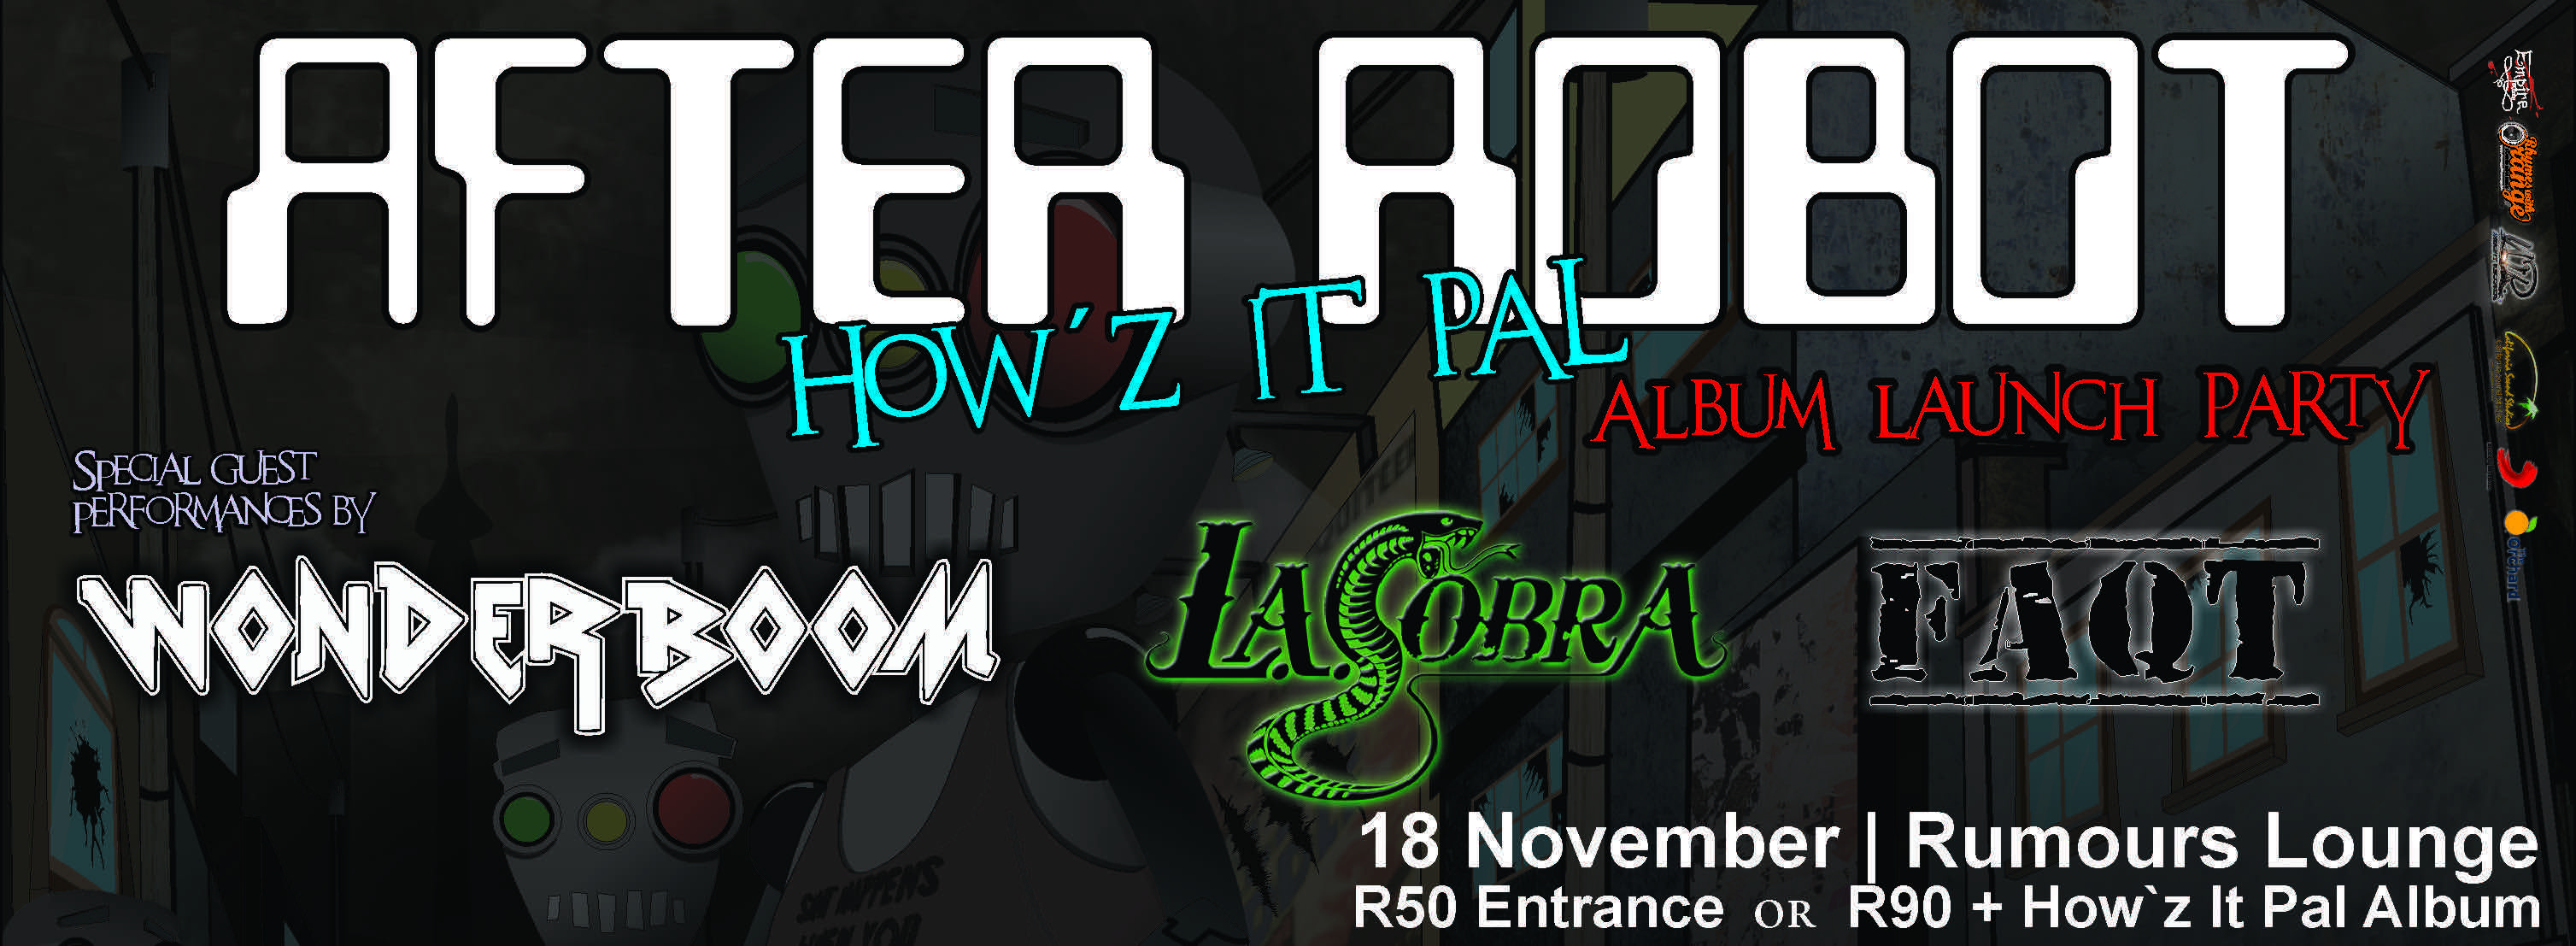 After Robot How'z It Pal Album Launch details or the South African music fans